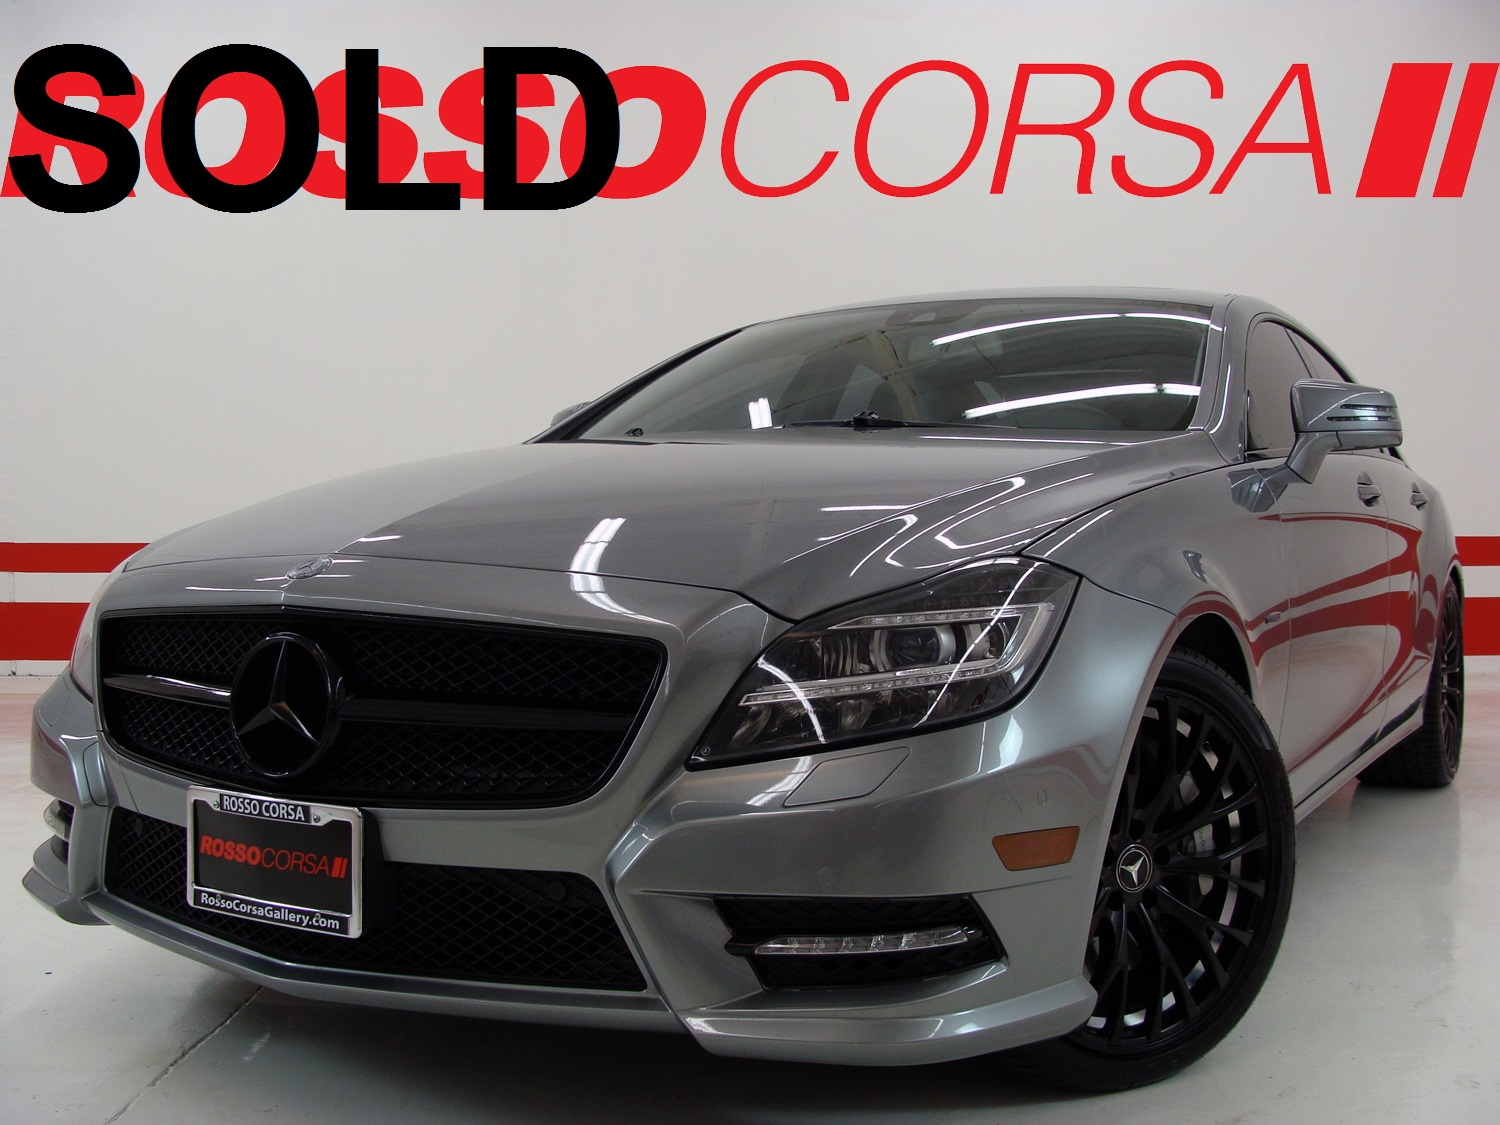 2012 Mercedes-Benz CLS550 CUSTOM ($82K MSRP)